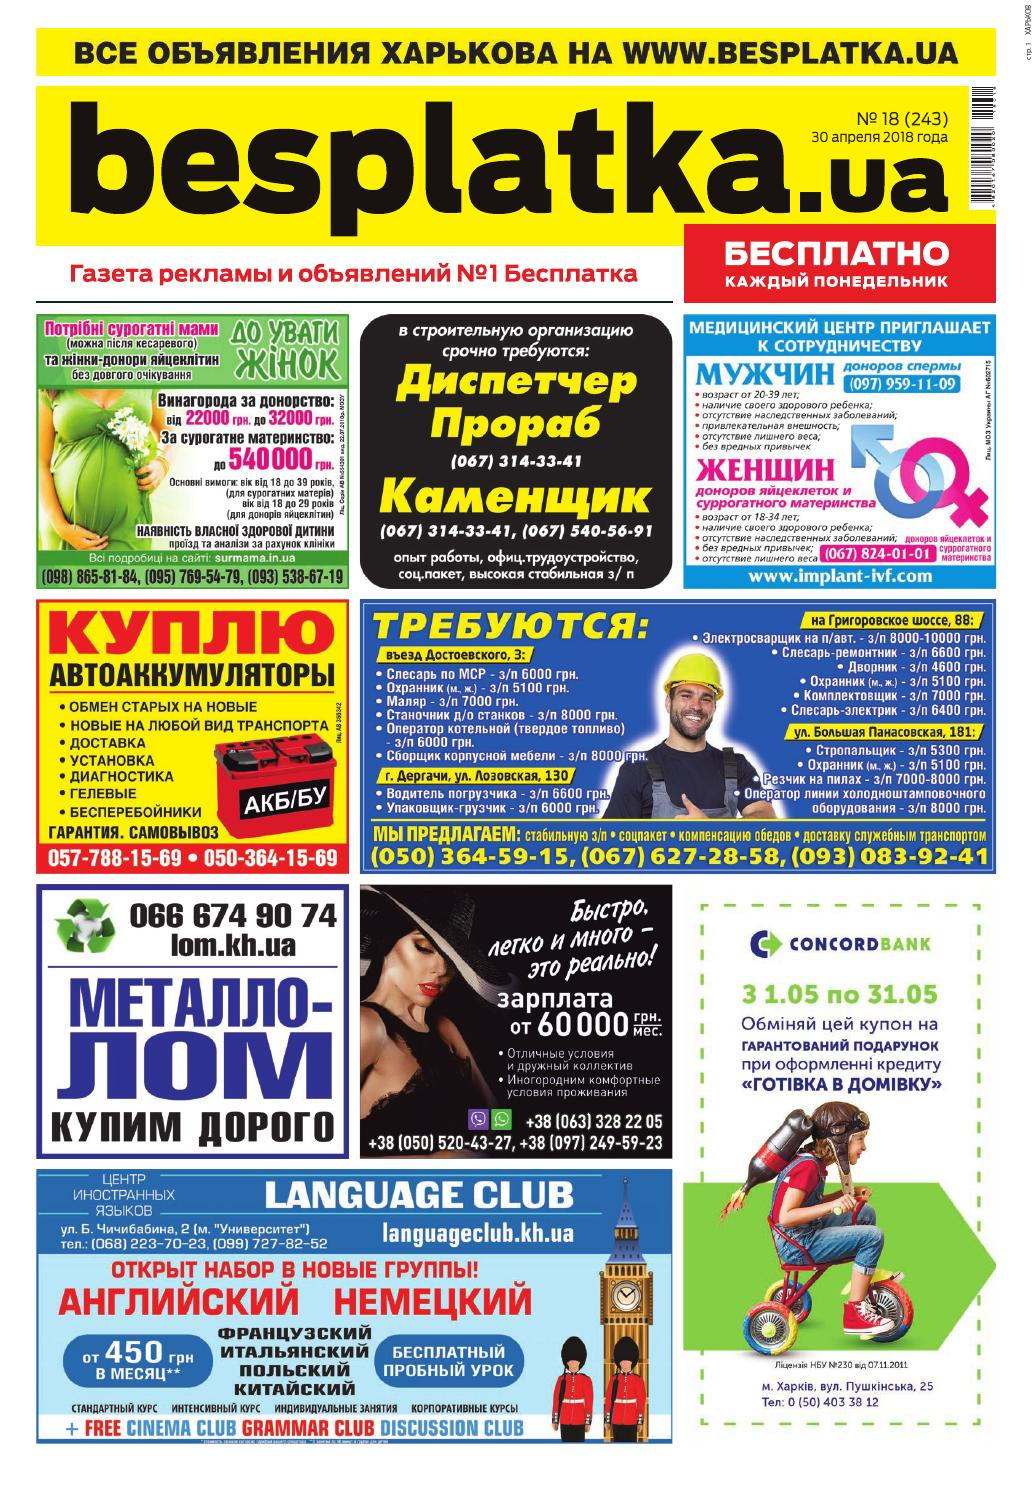 Besplatka  18 Харьков by besplatka ukraine - issuu 4f7c07dc9cc55